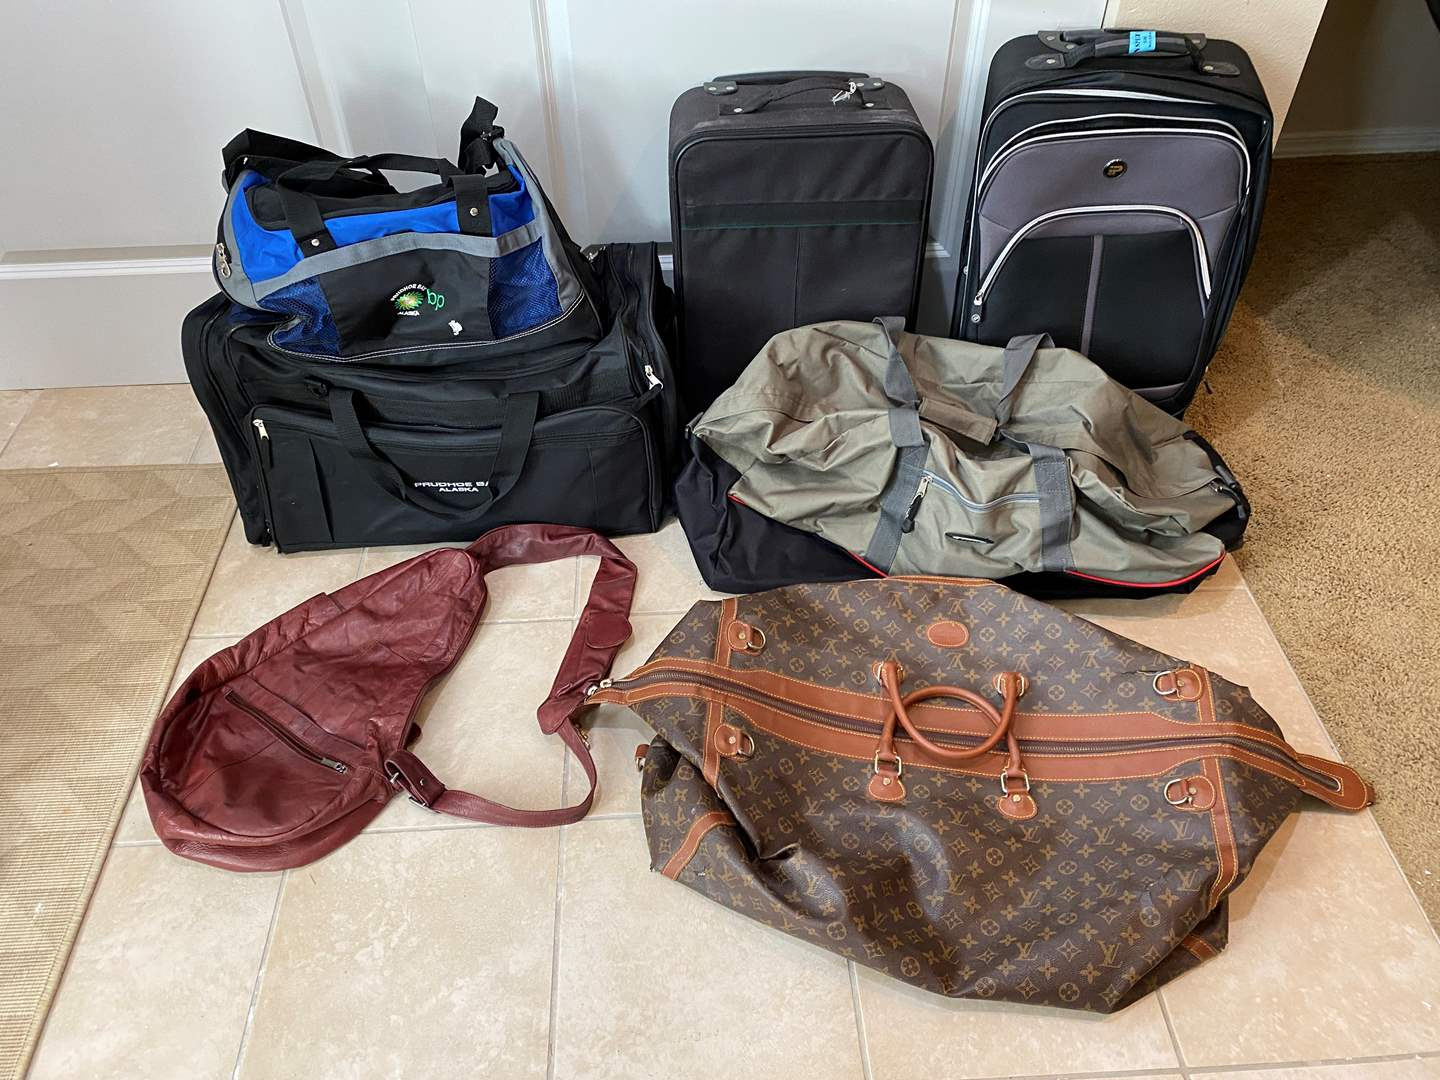 Lot # 116 - Louis Vuitton Duffel, Carry-On Size Luggage & Other Duffel Bags (main image)